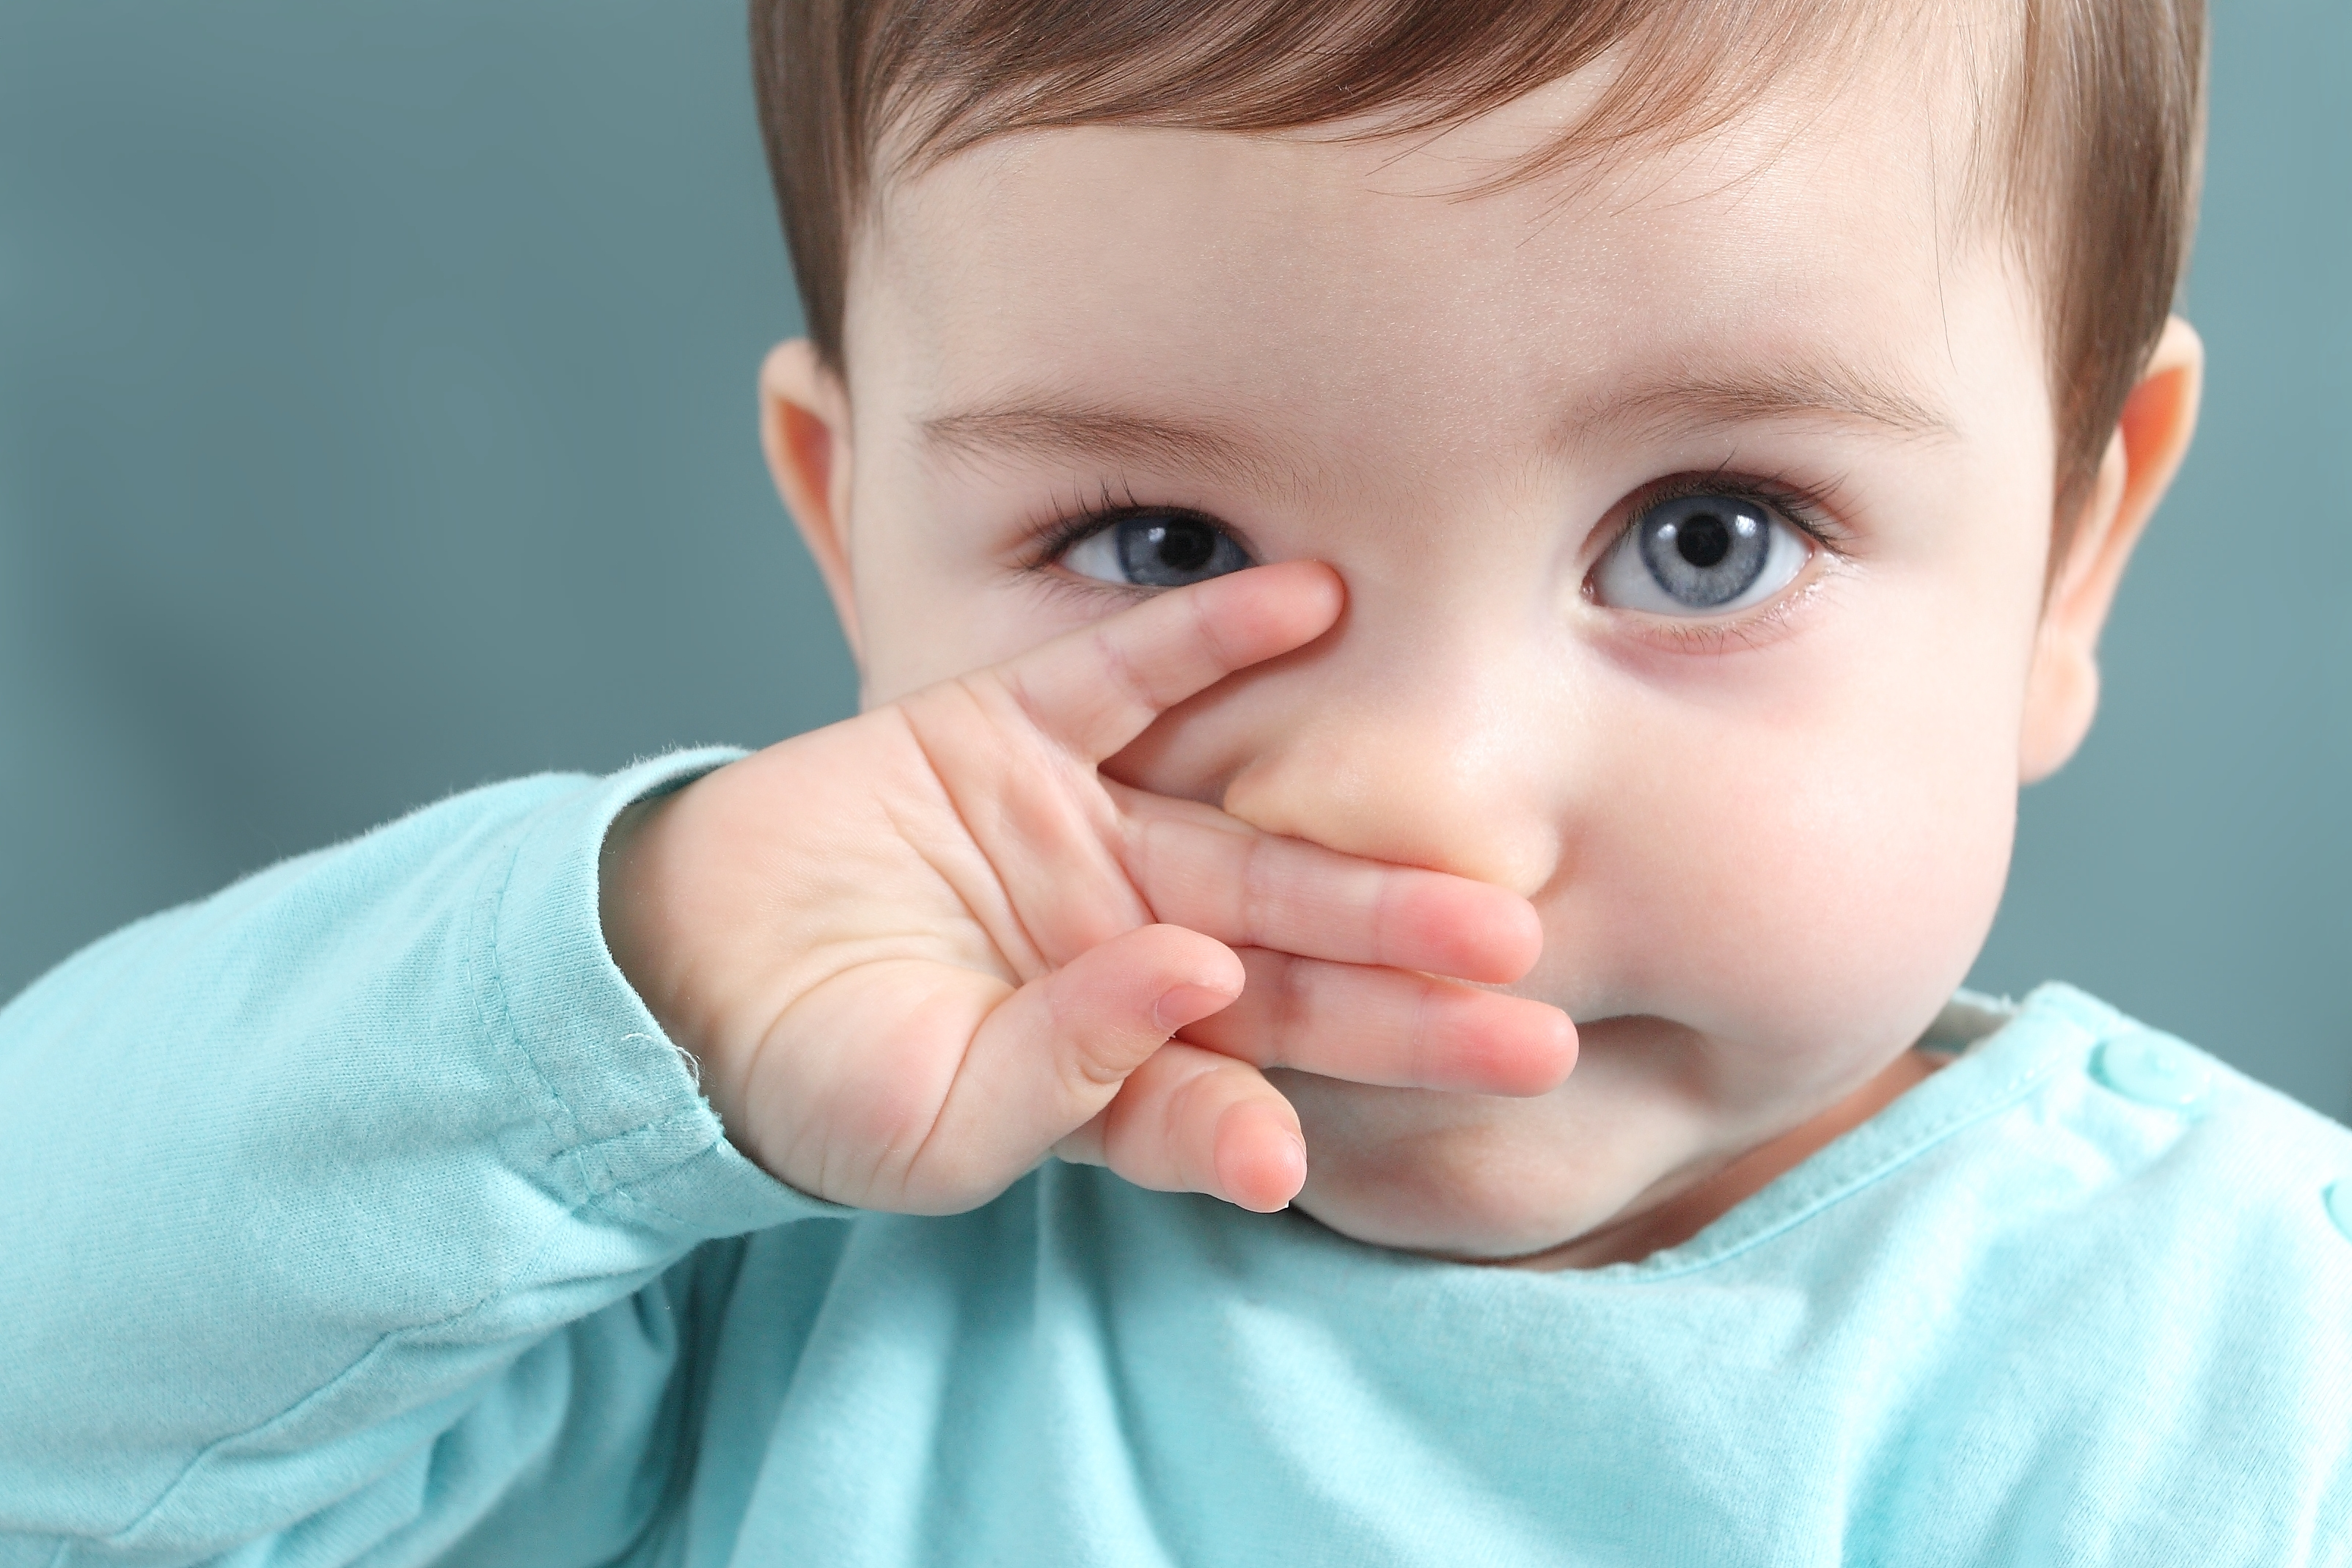 Runny nose in infants: symptoms, diagnosis, treatment and prevention 13